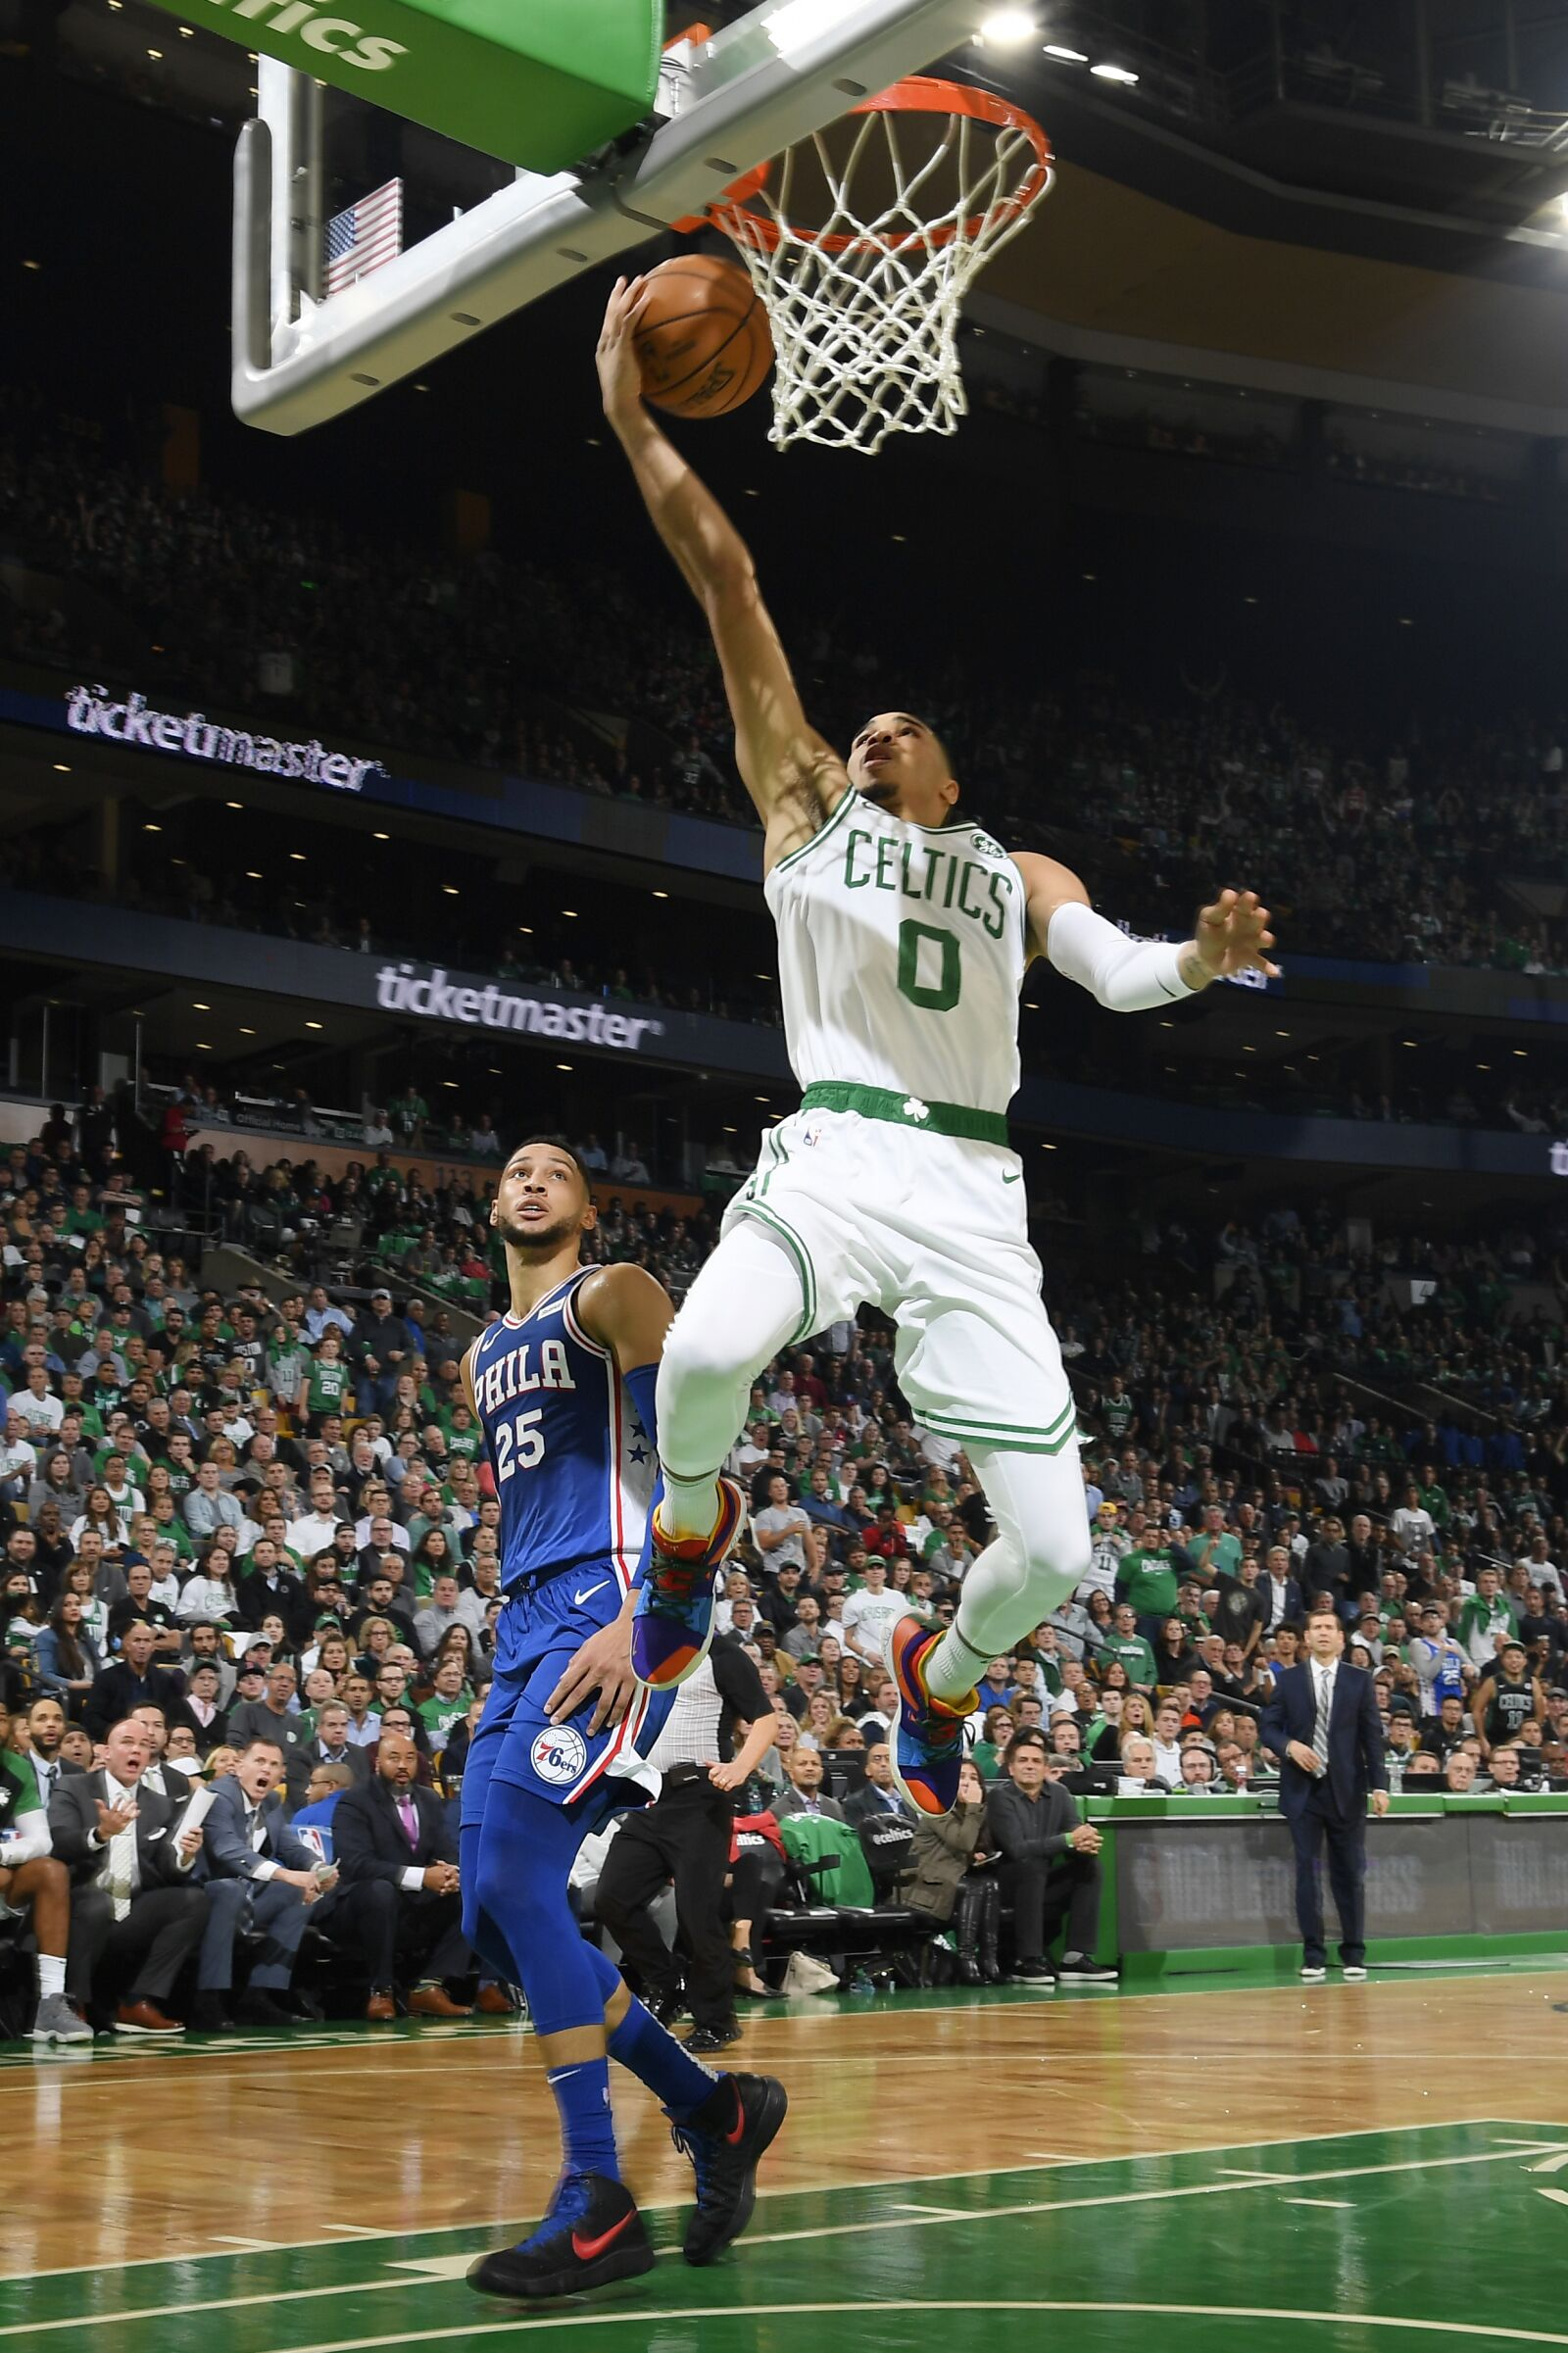 Celtics Host Sixers: Highlights, Score and recap from NBA Opening